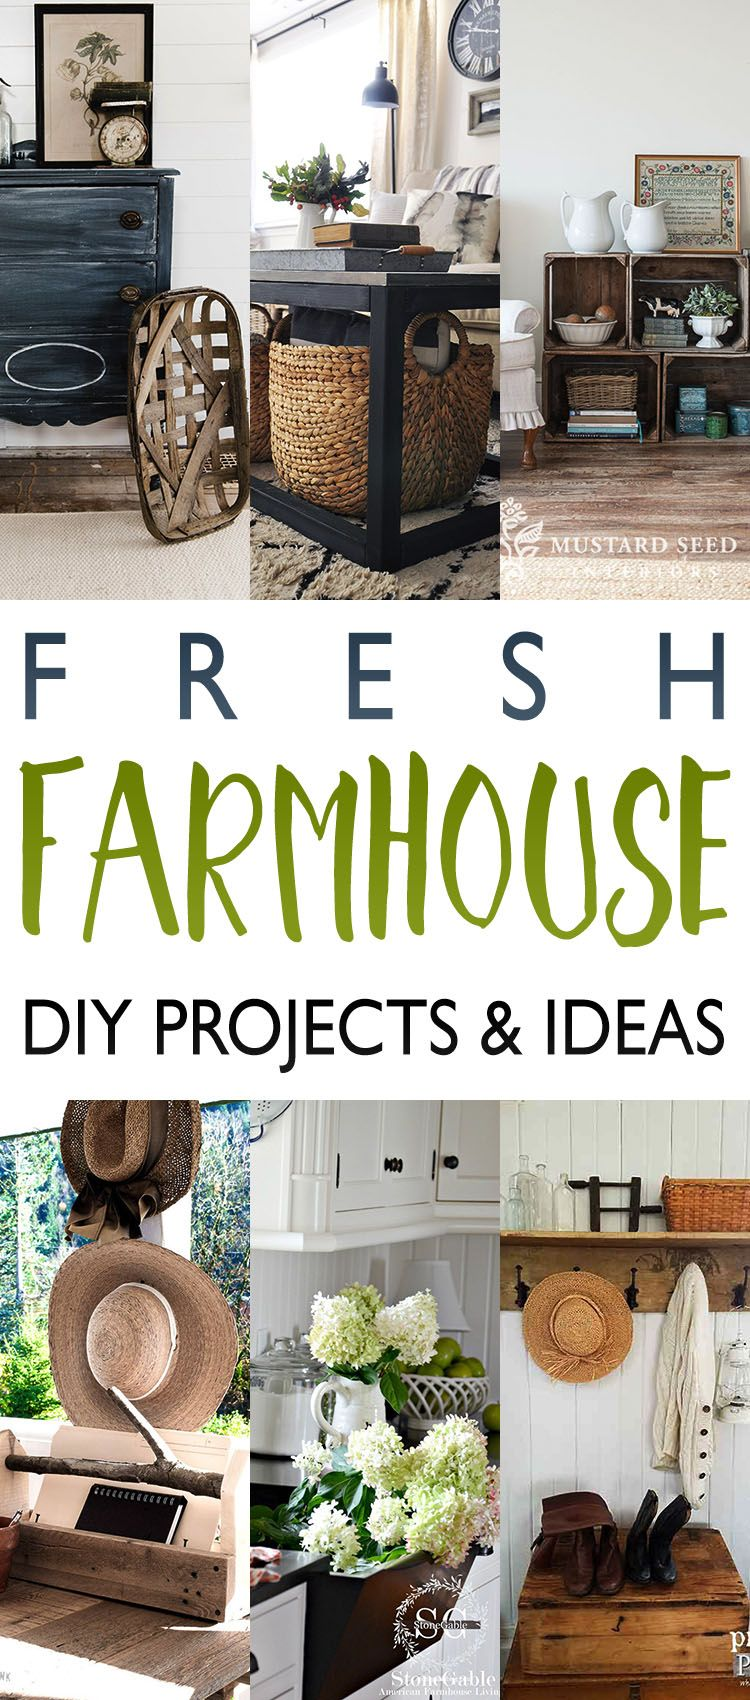 Fresh Farmhouse Diy Projects And Ideas Cottage Market